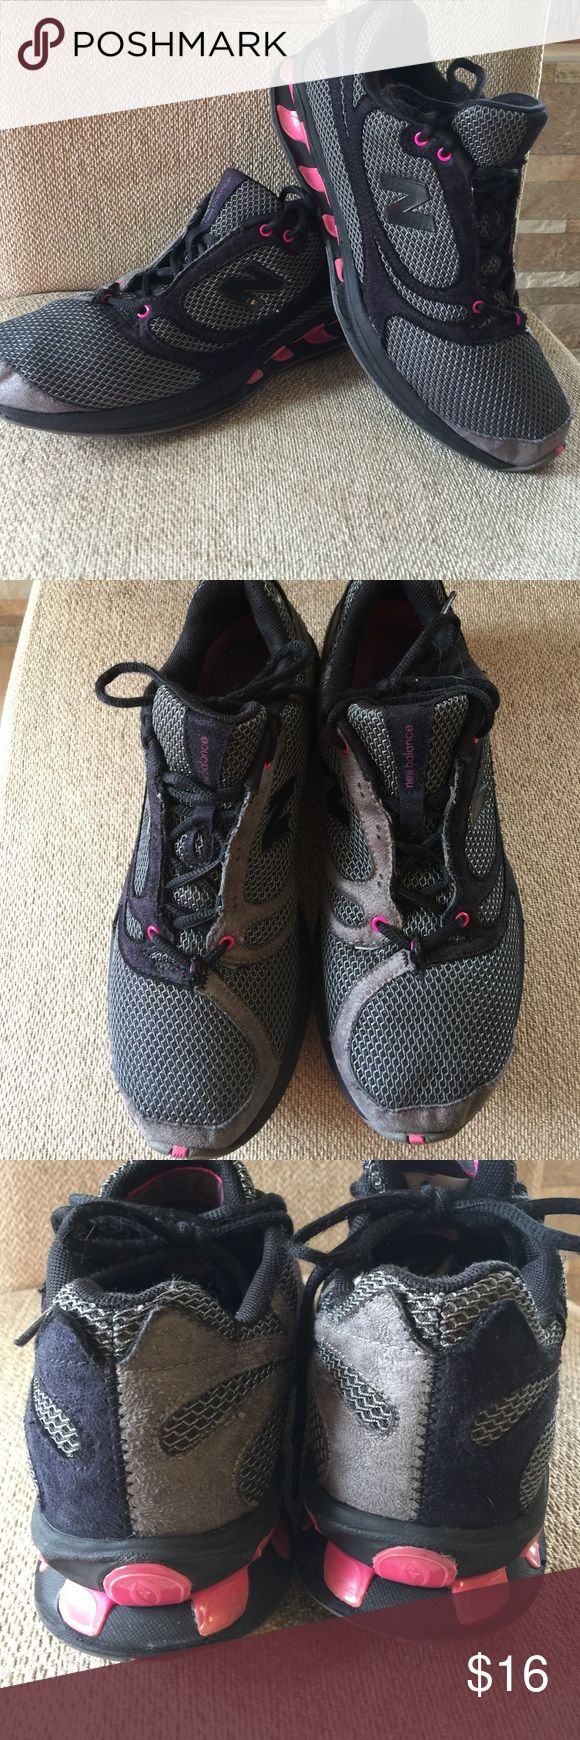 New balance pink and gray athletic shoes New balance pink and gray athletic shoes women's. Size 9. New balance Shoes Athletic Shoes